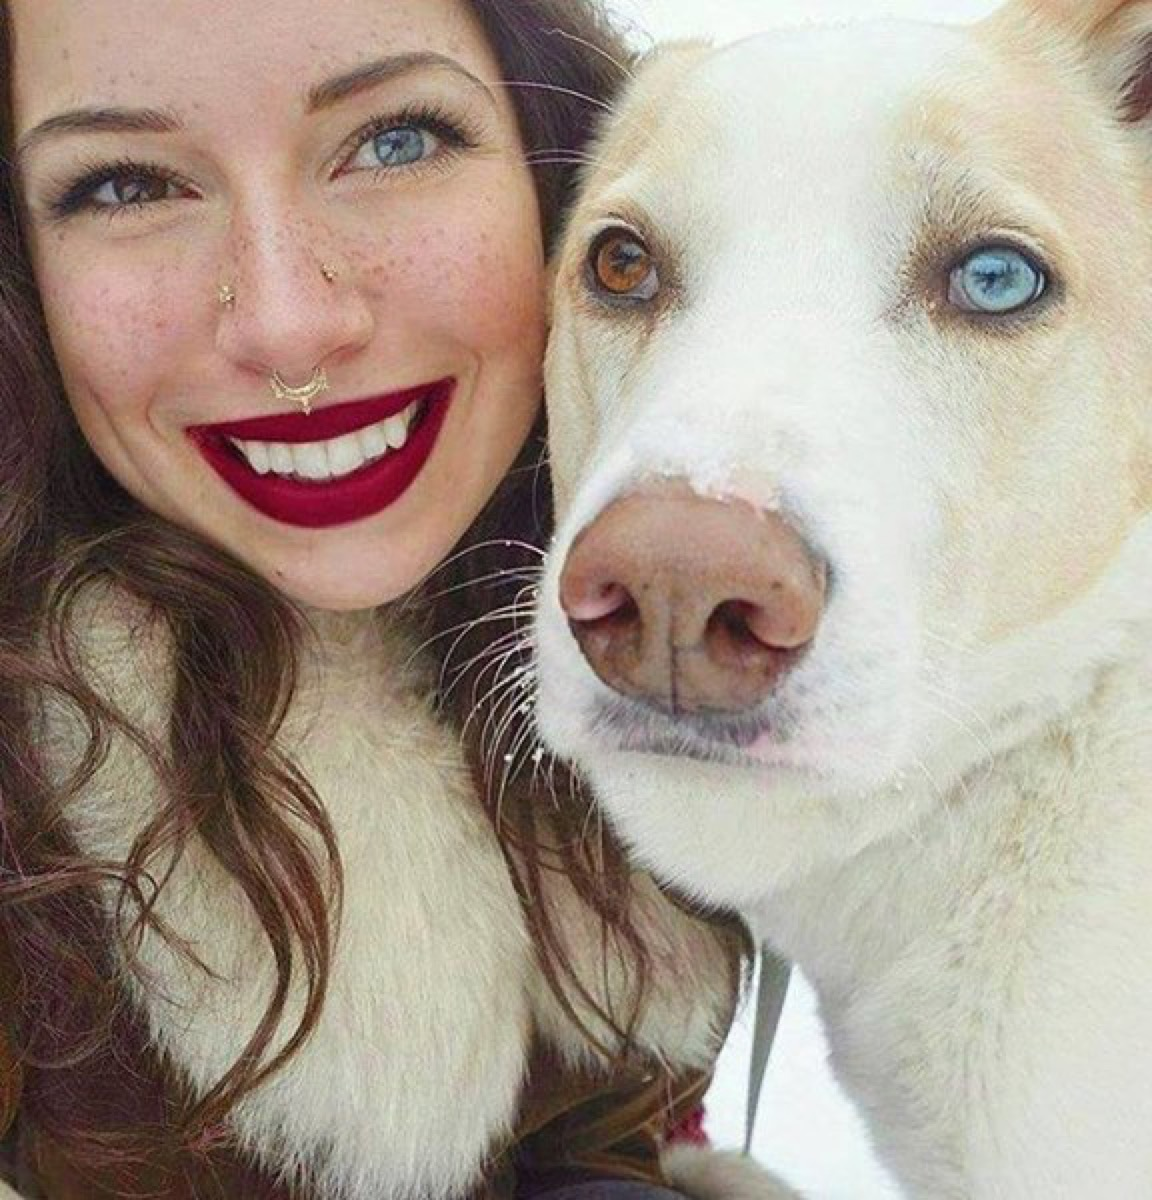 Woman has one blue and one brown eye and so does dog, dog and owner twins